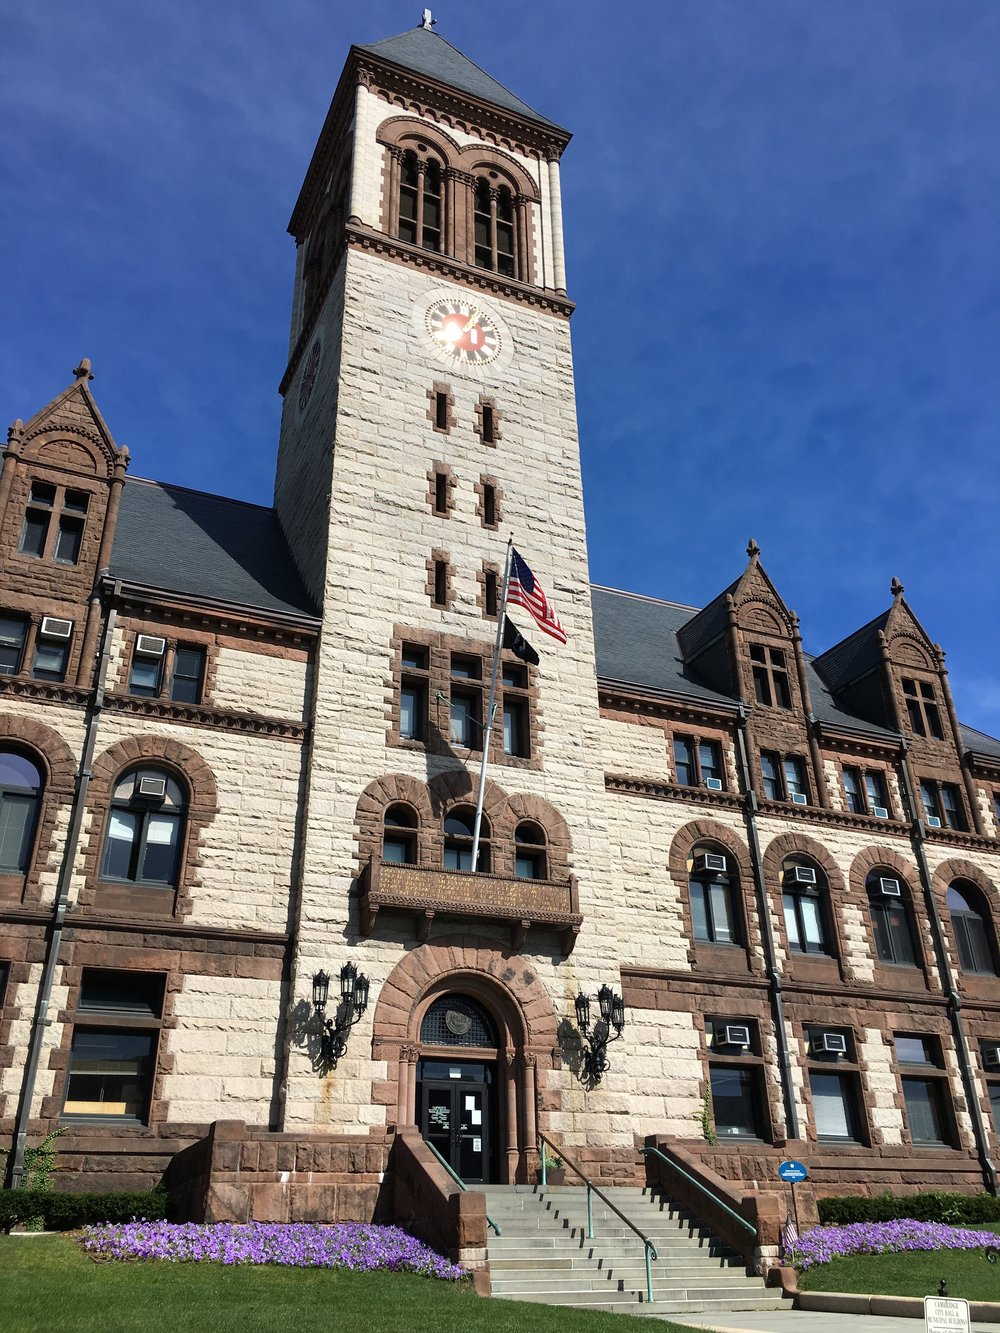 Cambridge City Hall, where FOIA requests cost $17,000 to fulfill. Photo credit - me.